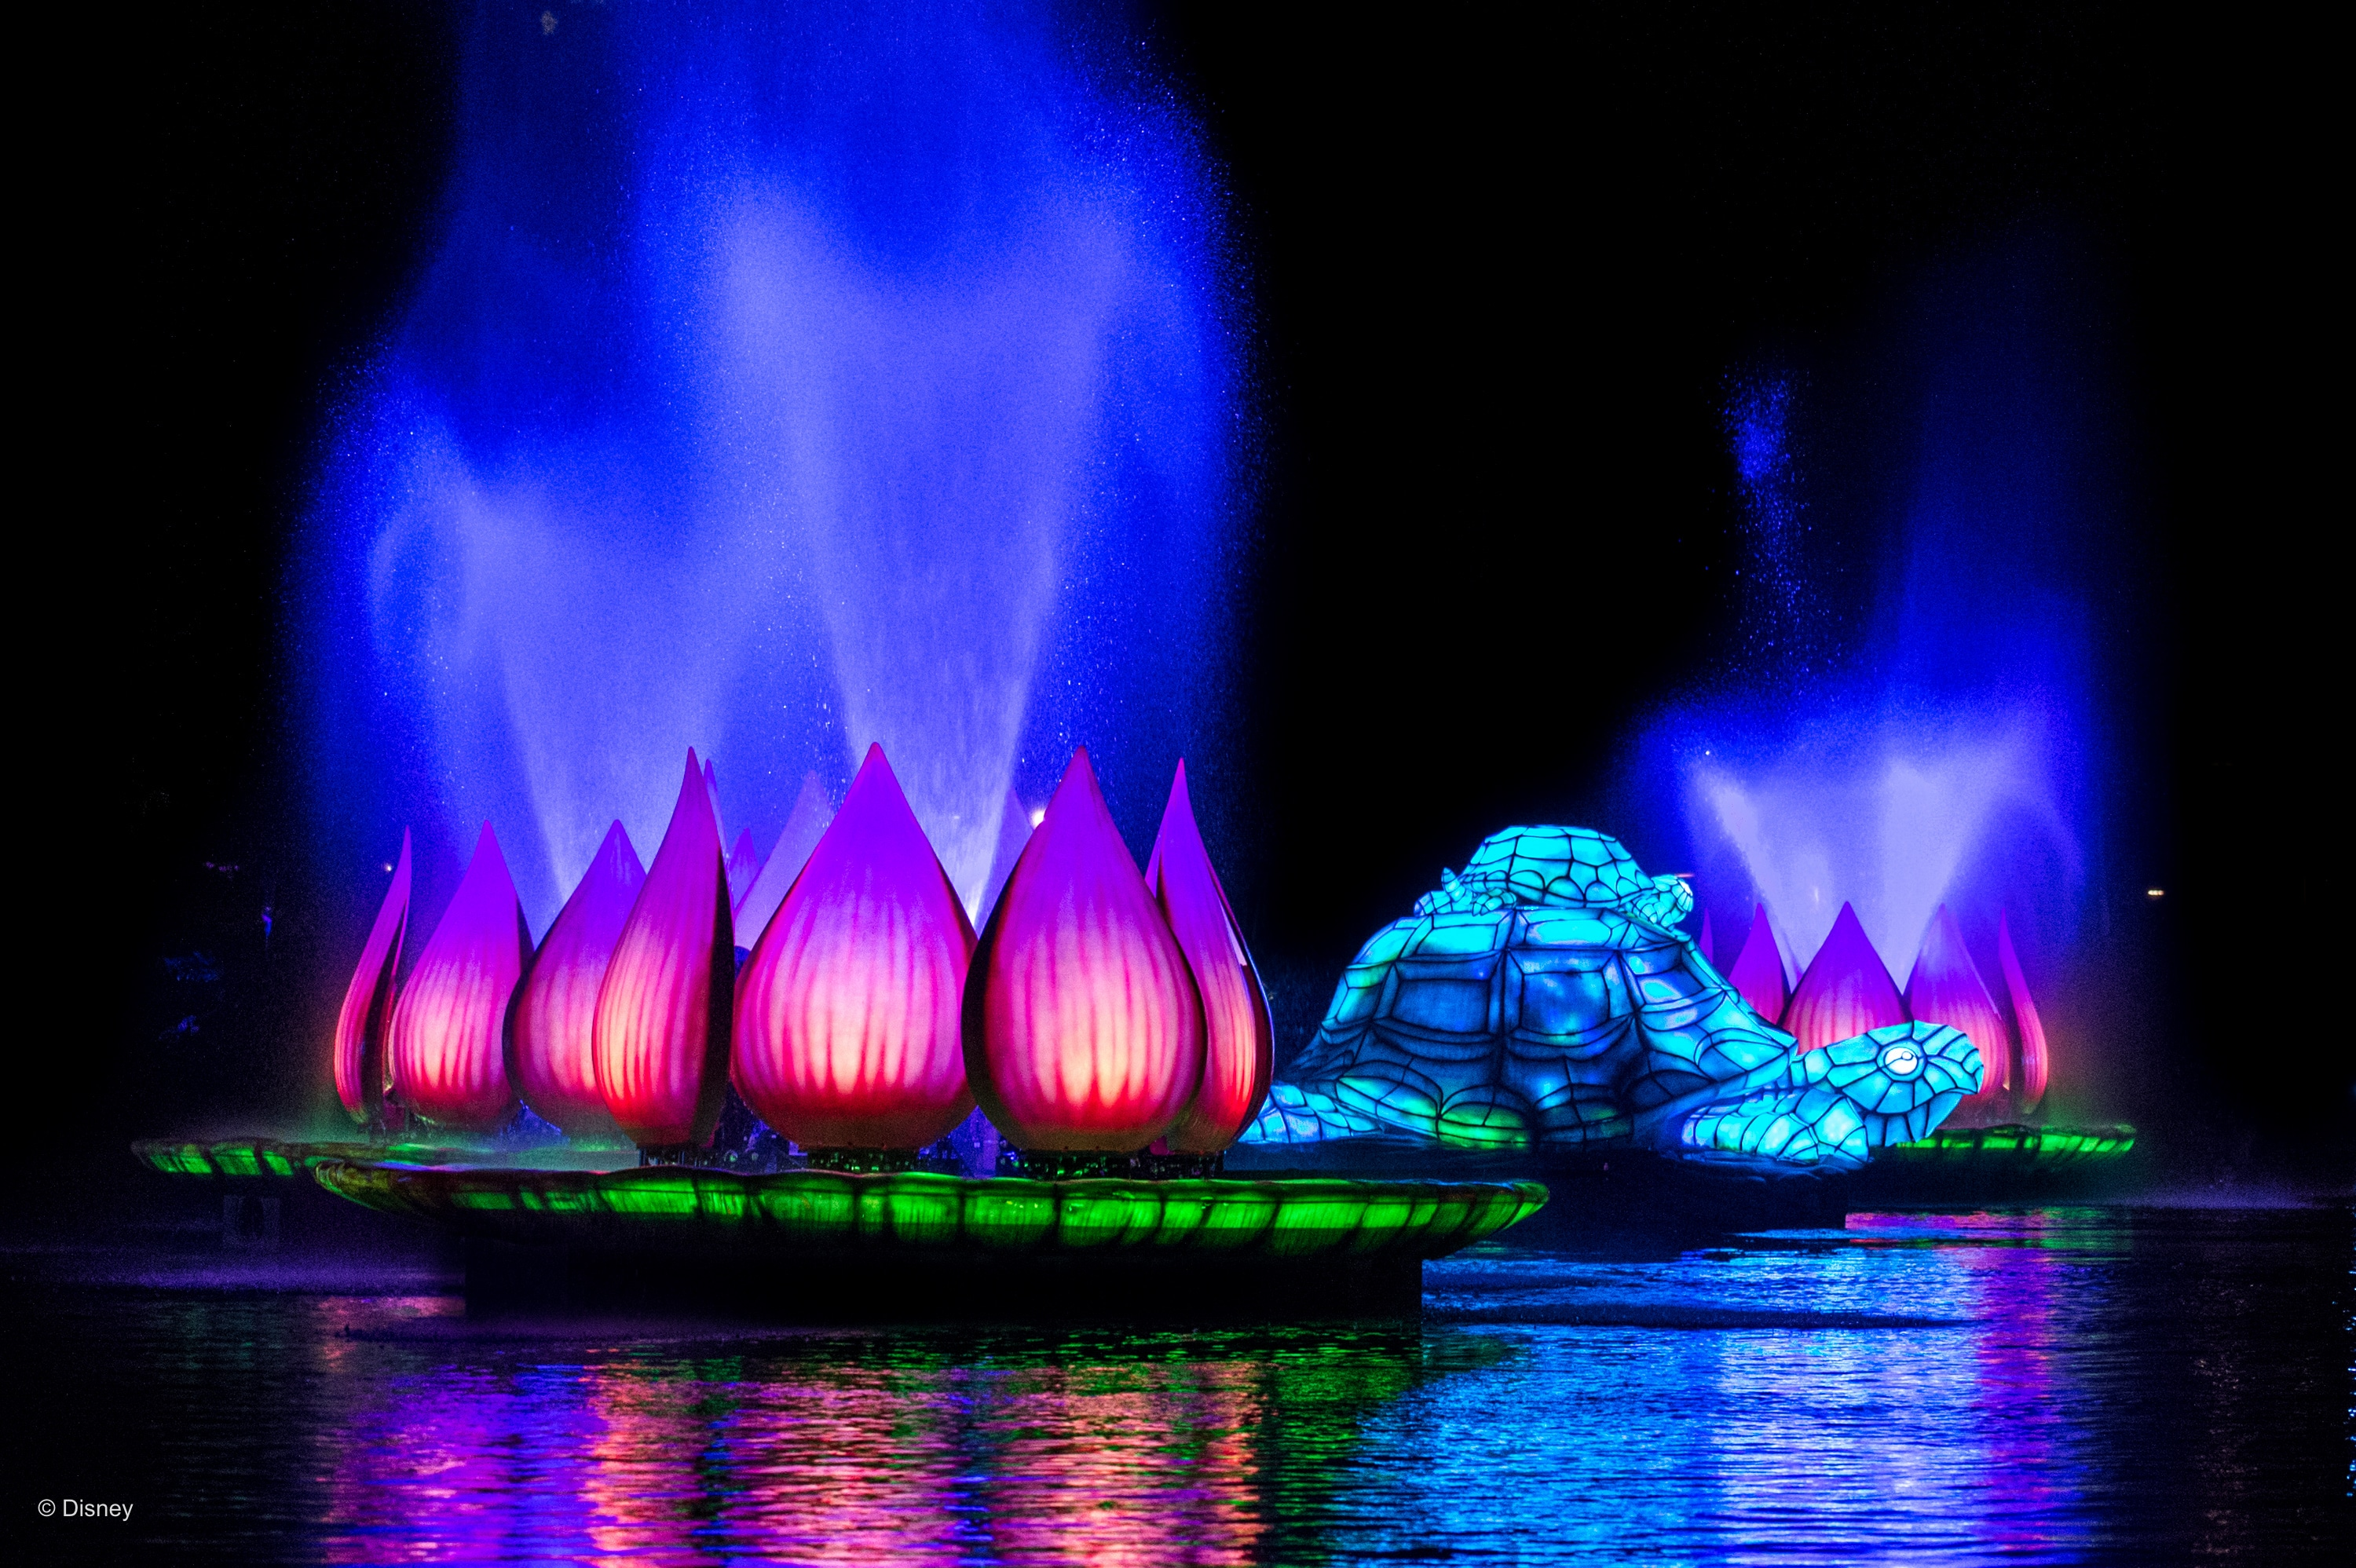 Rivers of Light show at Disney's Animal Kingdom